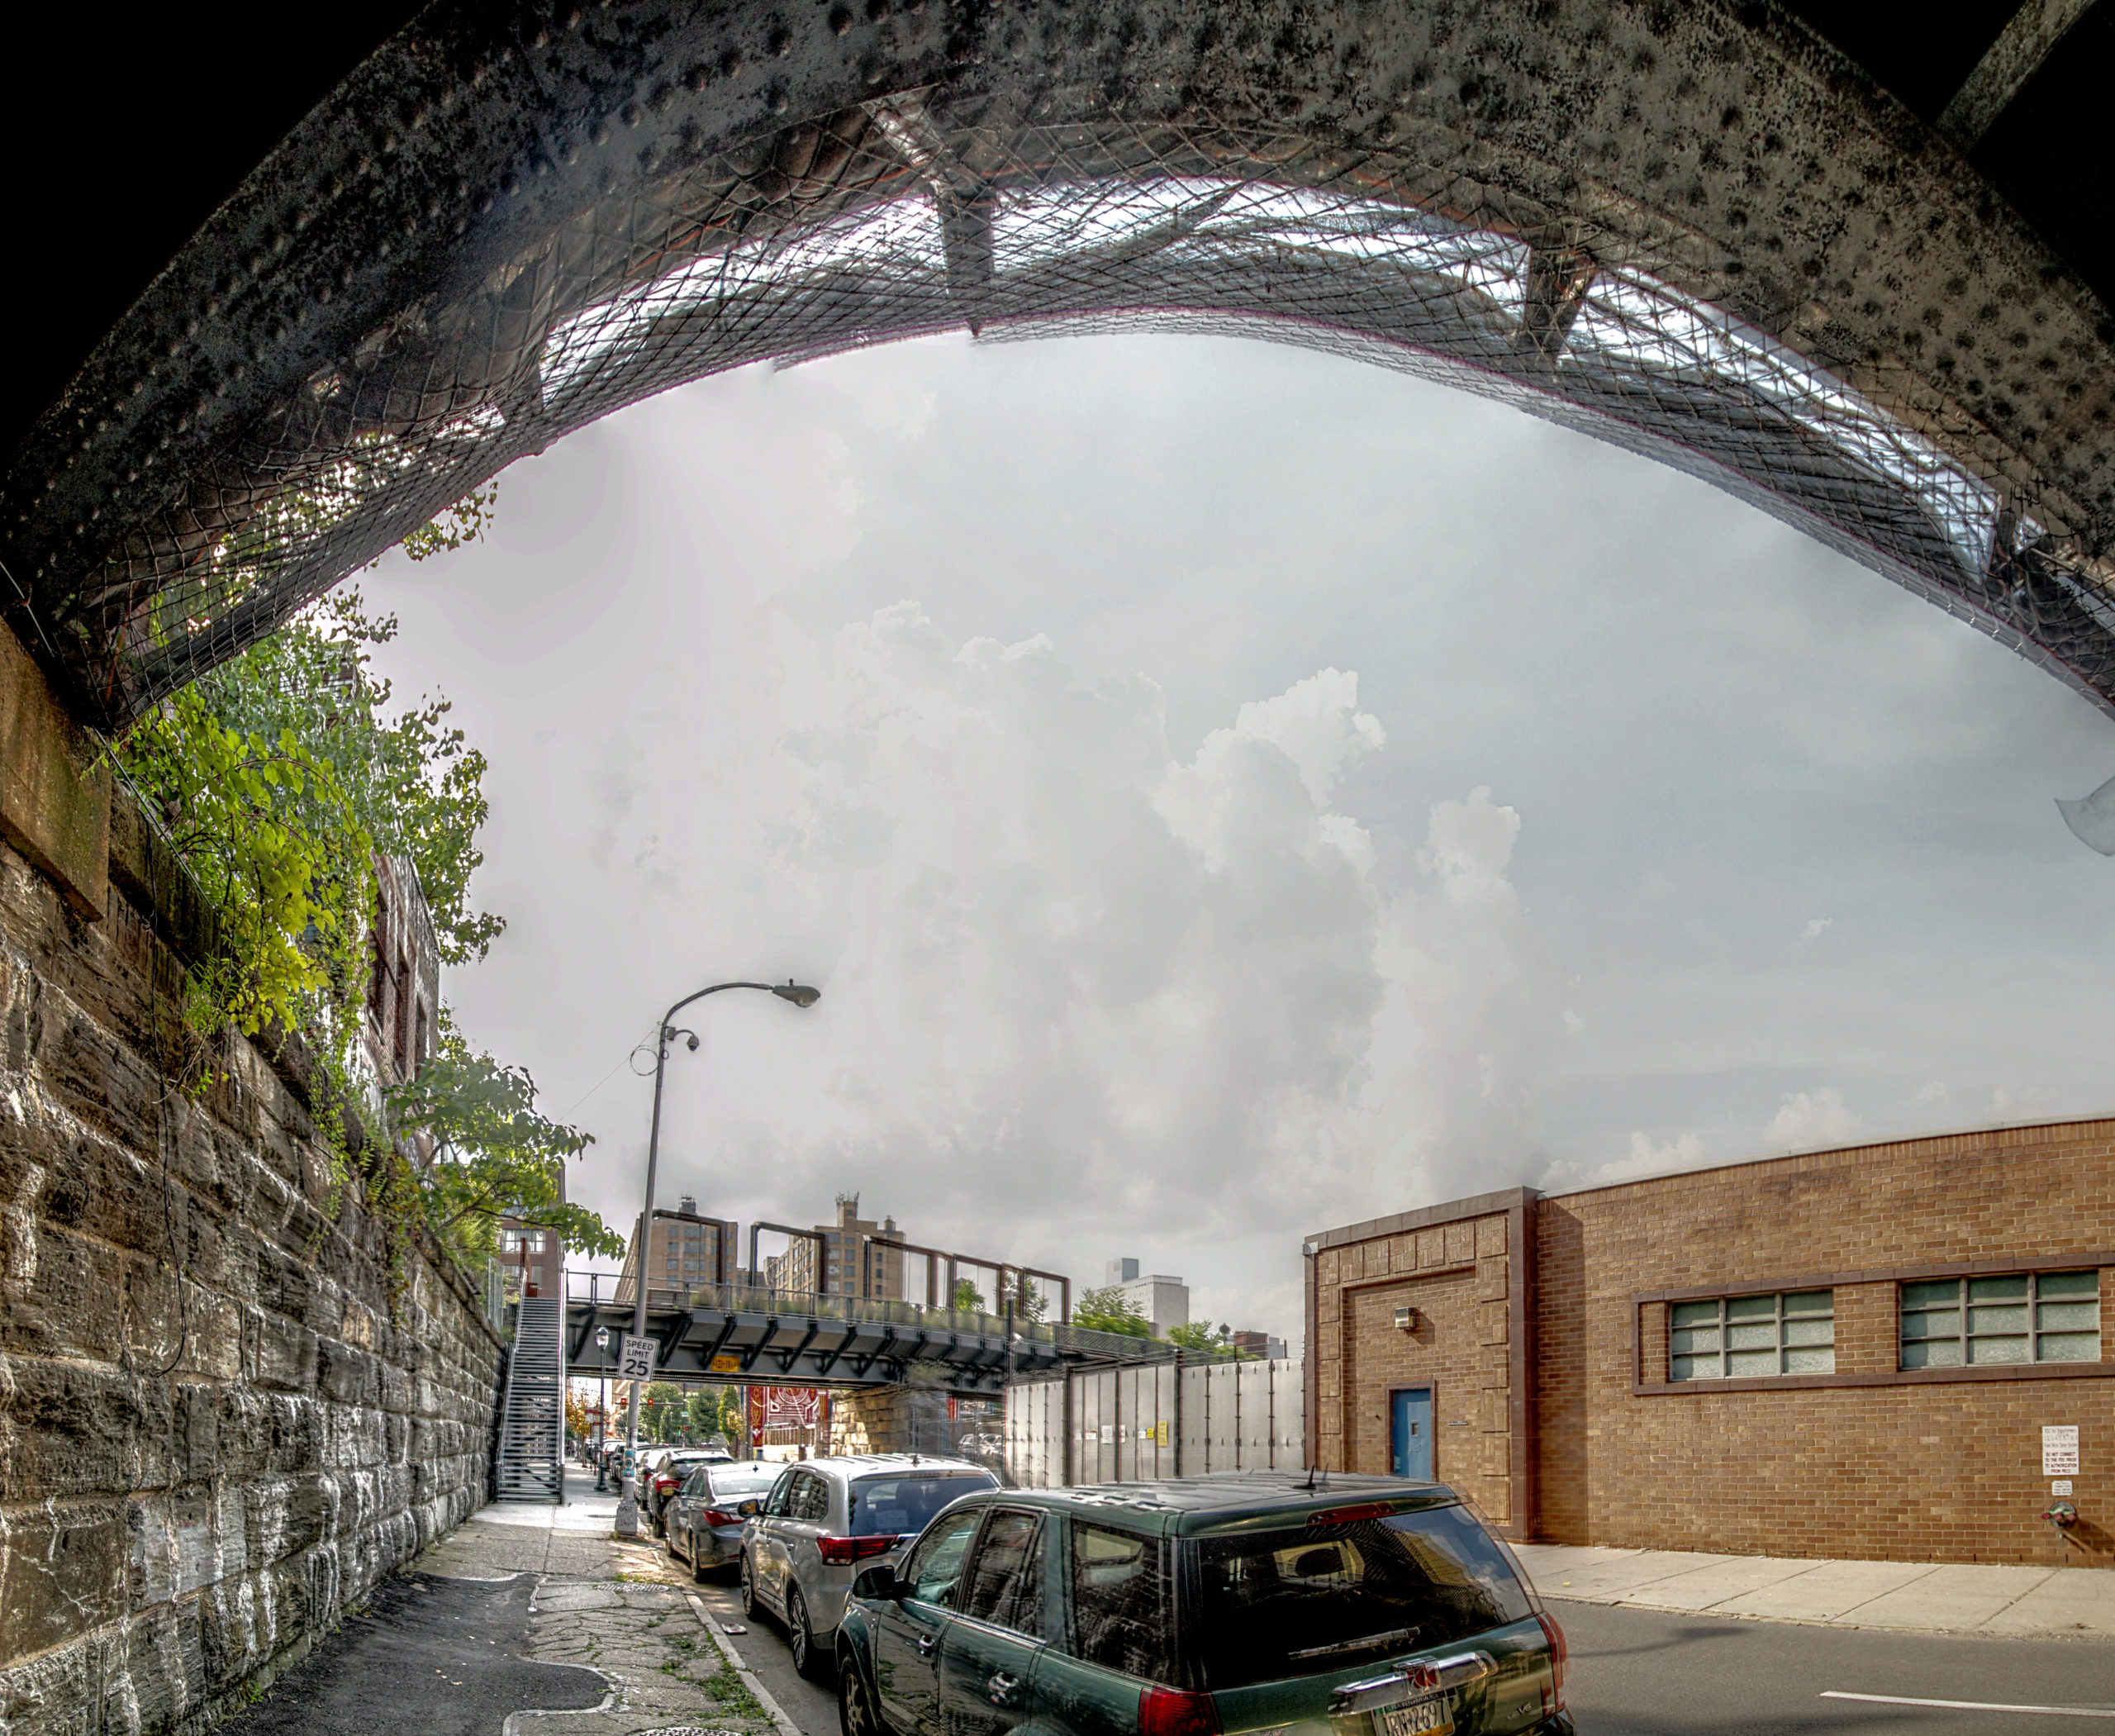 Reading Viaduct and The Rail Park N 11th St & Callowhill St Philadelphia, PA Copyright 2019, Bob Bruhin. All rights reserved.